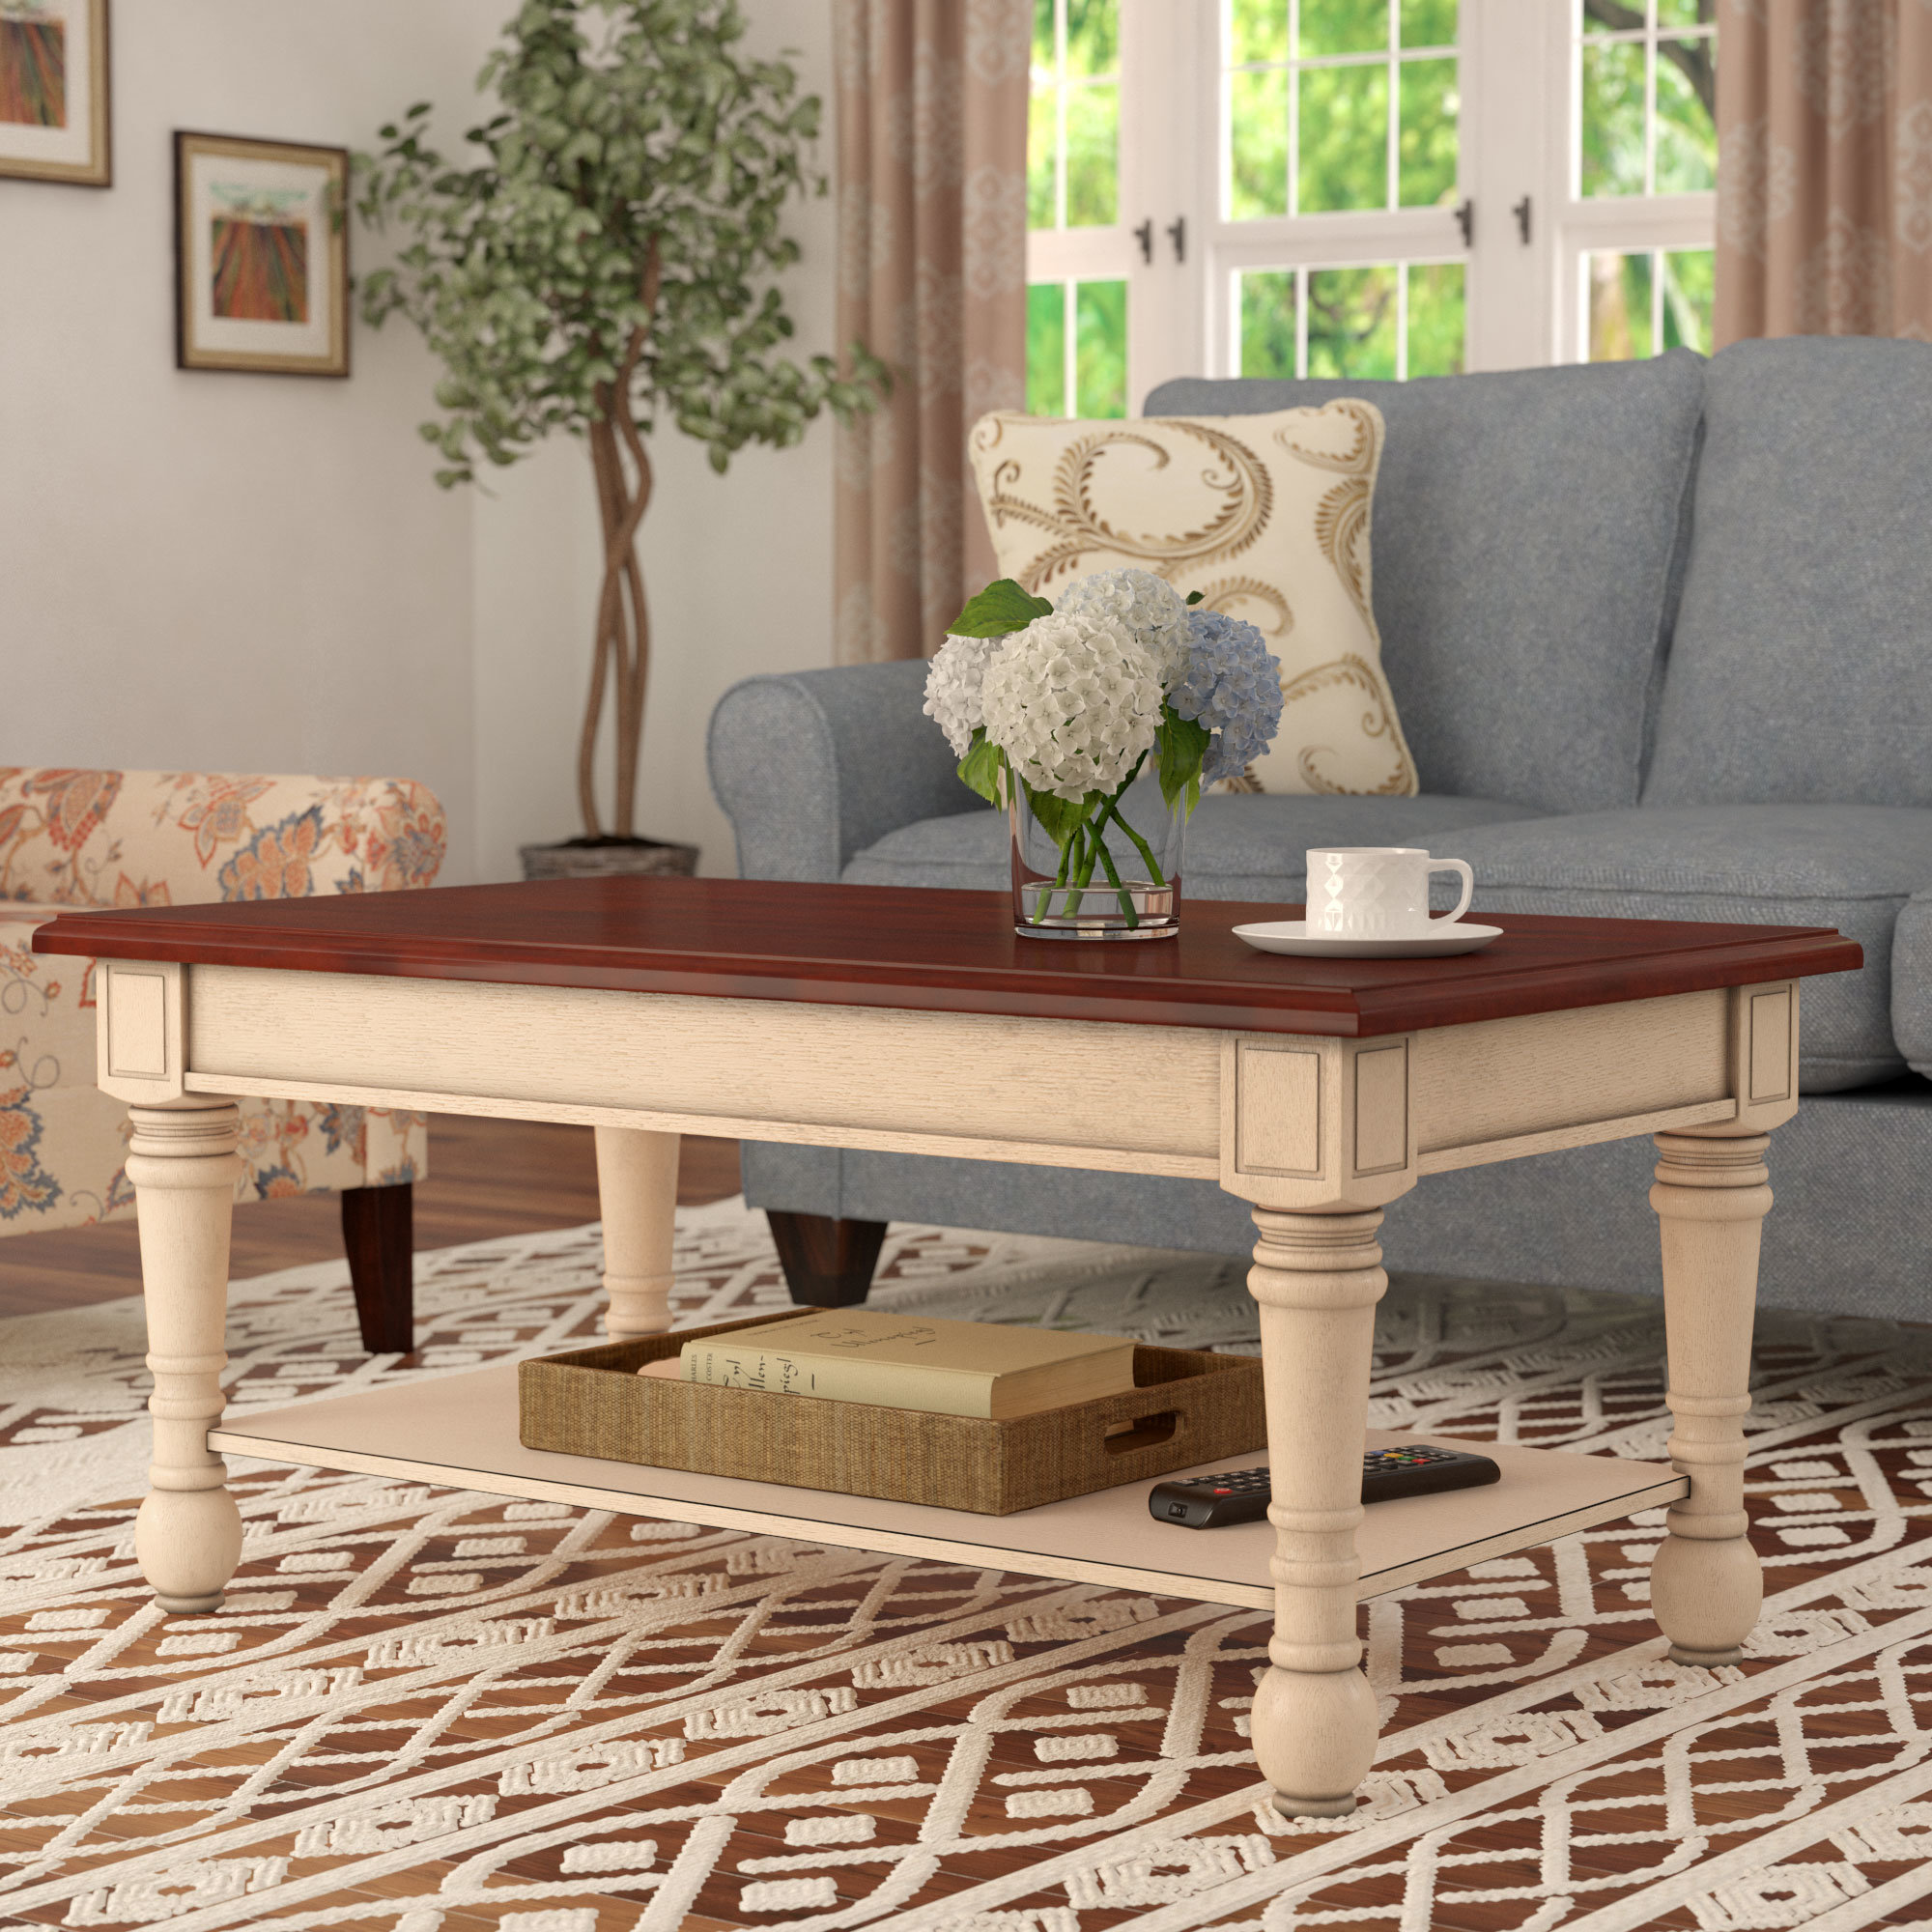 antique coffee table hochstetler classic the eryn accent pottery barn headboard set round tables west elm lighting what console upholstered chairs glass and metal end wood one